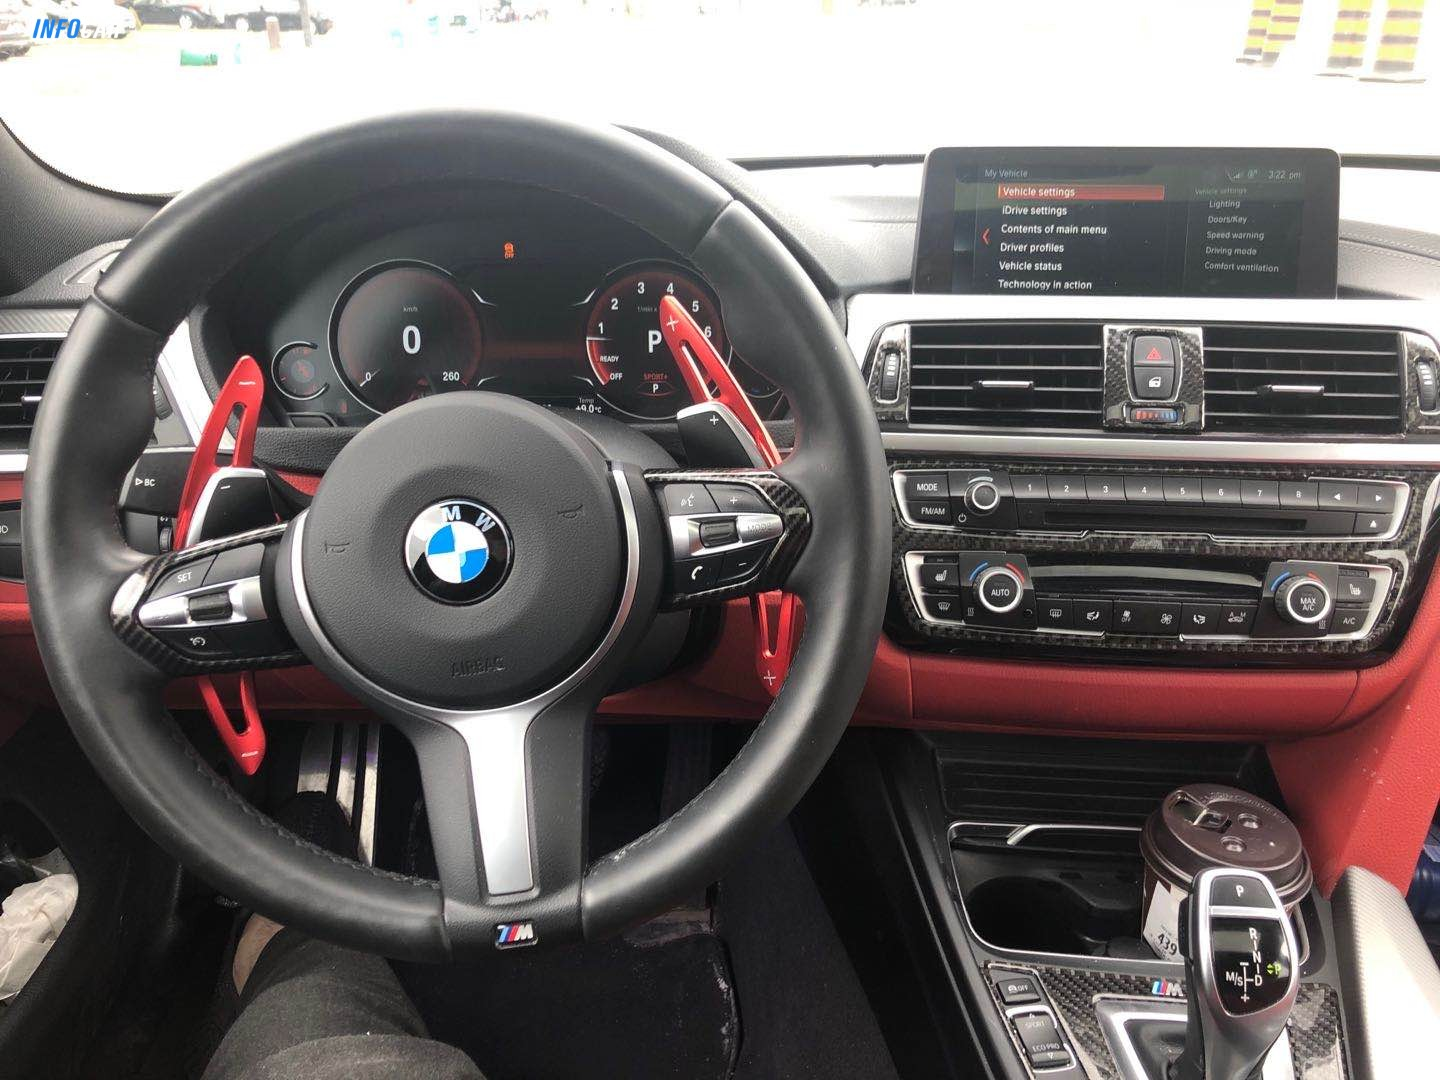 2018 BMW 4-Series Gran Coupe 430i - INFOCAR - Toronto's Most Comprehensive New and Used Auto Trading Platform